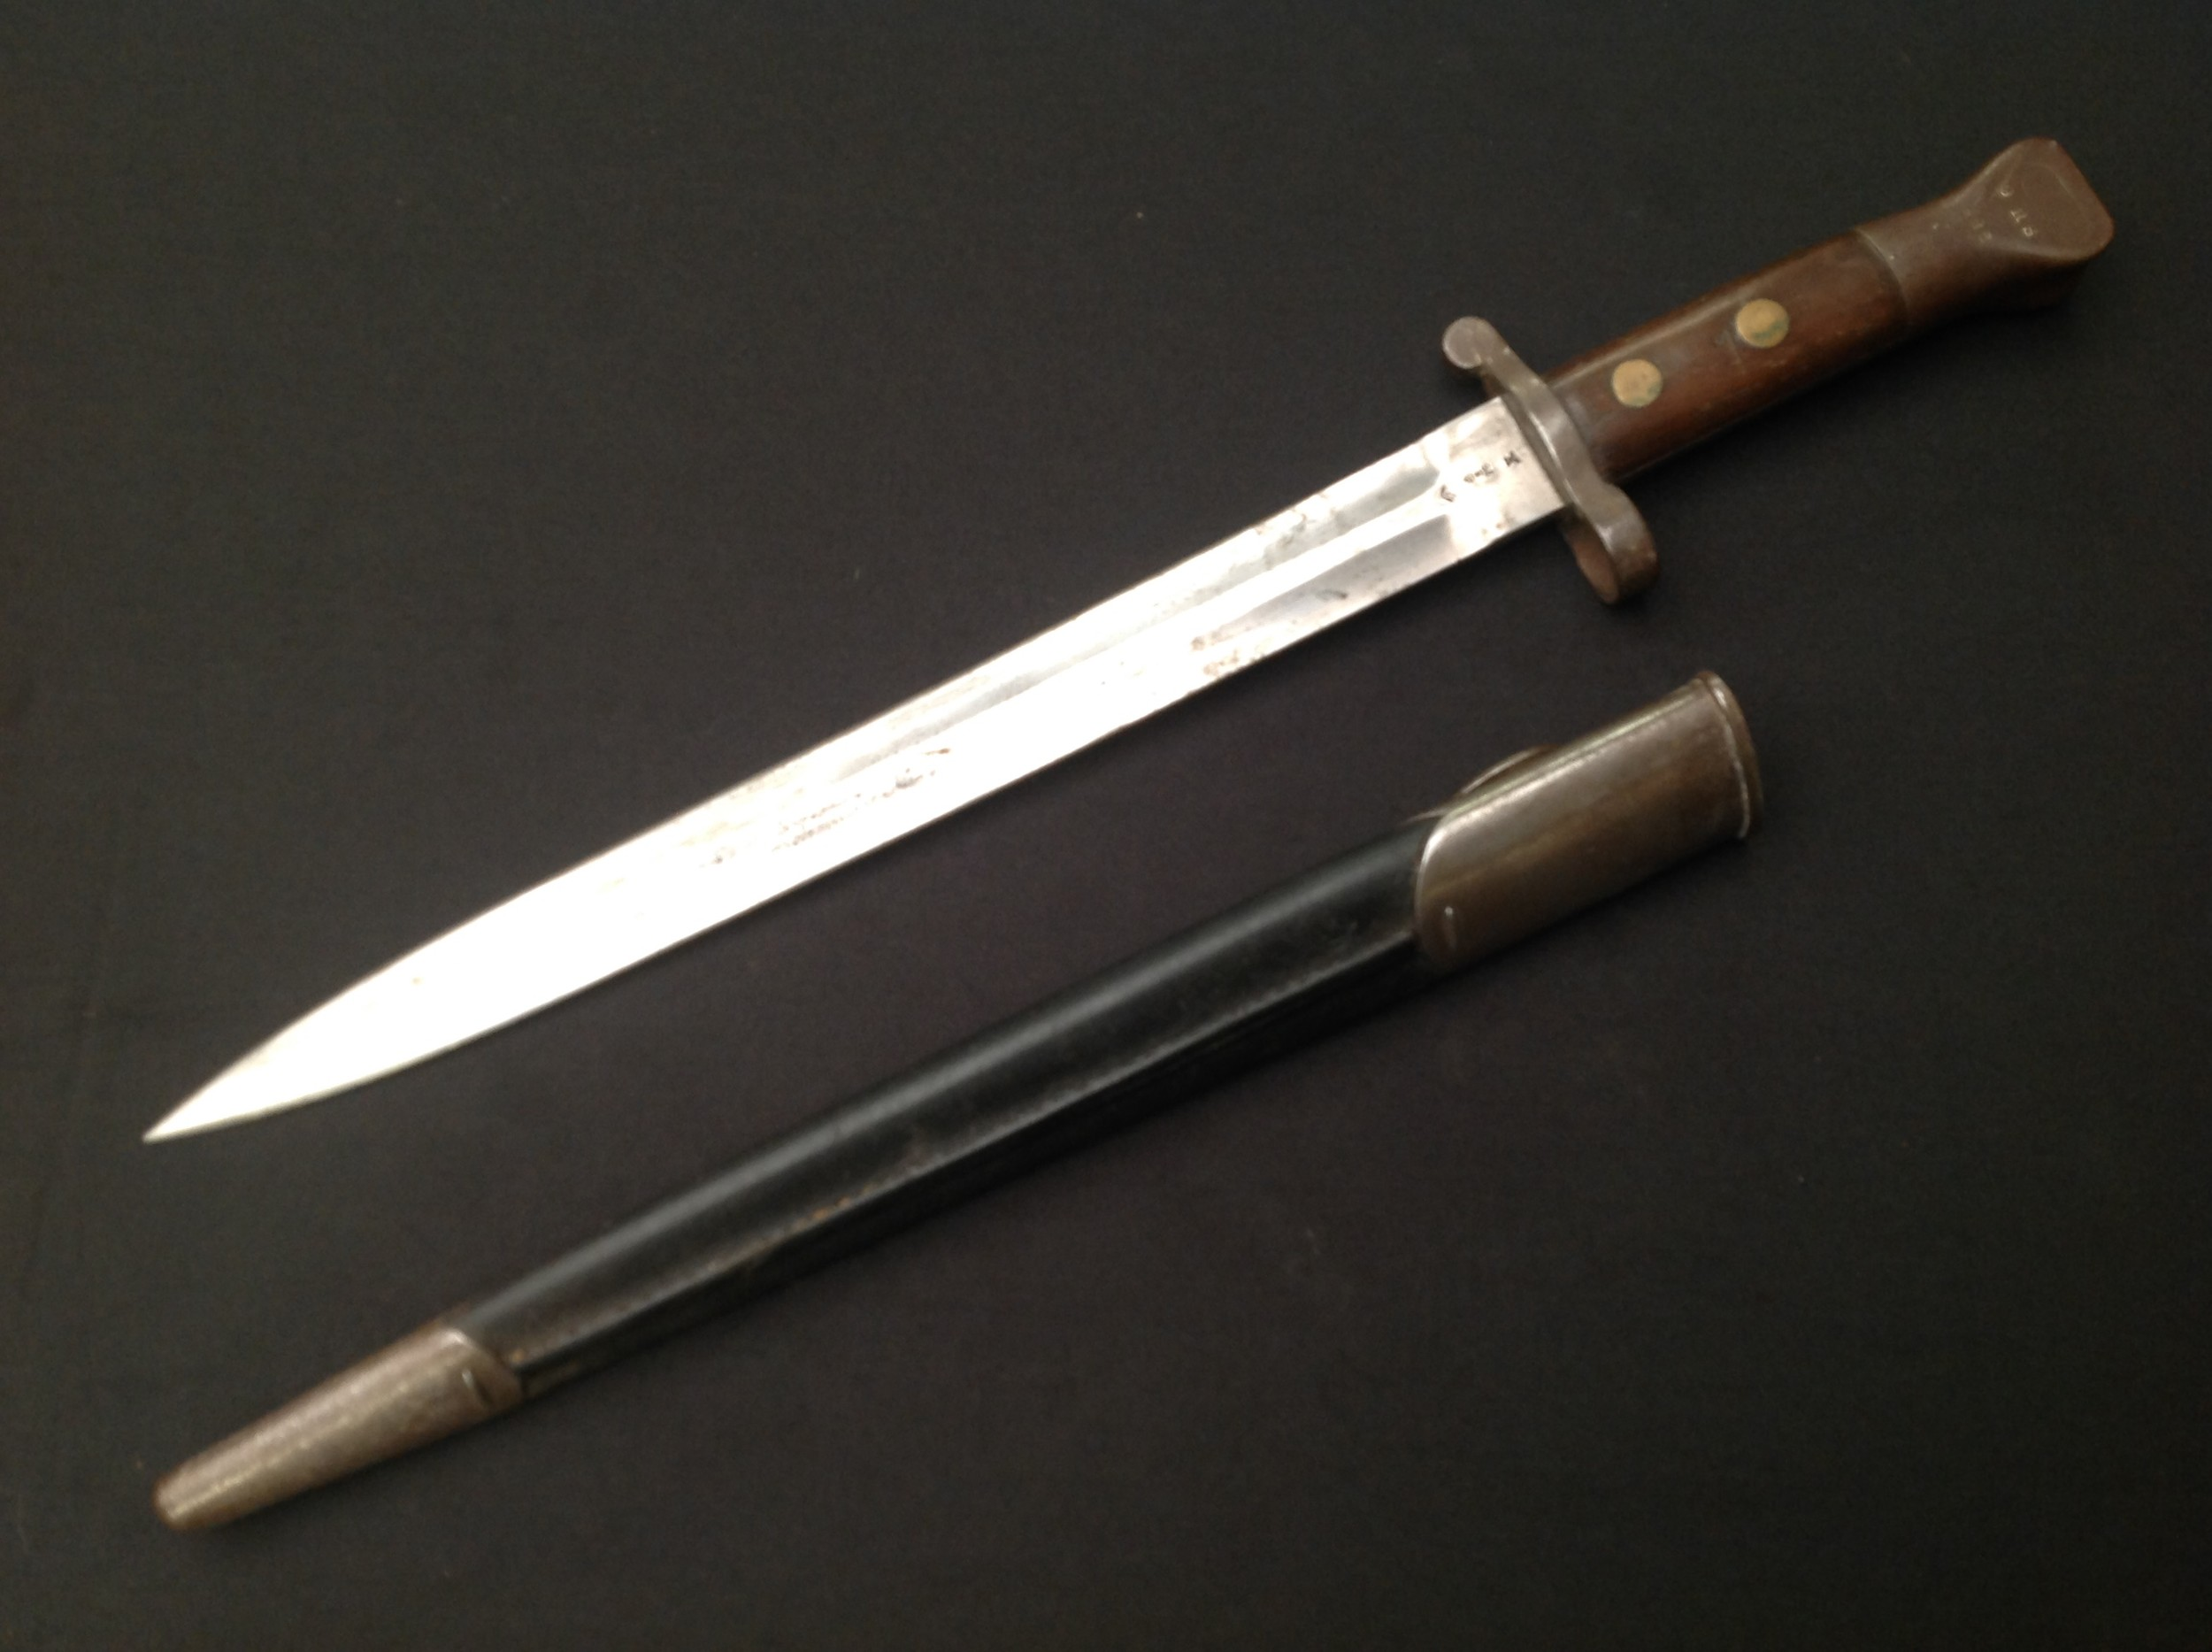 British 1888 pattern bayonet for Long Lee Enfield and Long Lee Metford rifles, 30cm blade by - Image 2 of 11